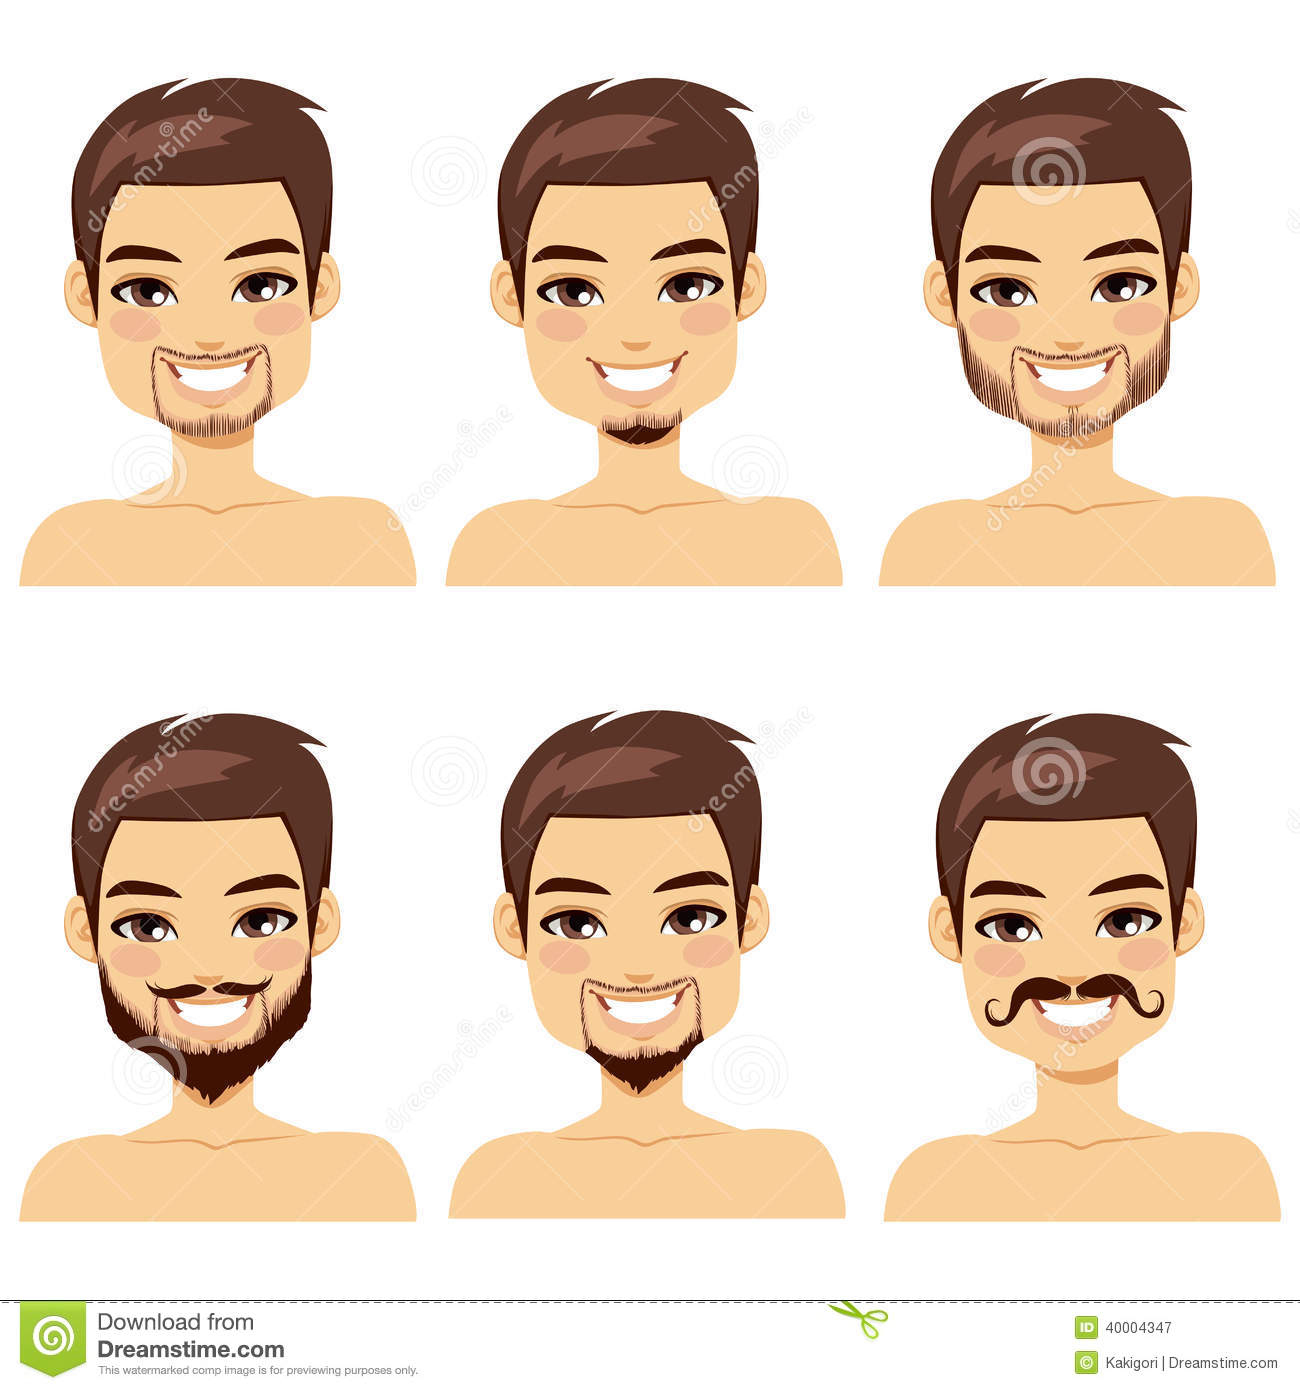 brown haired man beard styles stock vector image 40004347. Black Bedroom Furniture Sets. Home Design Ideas